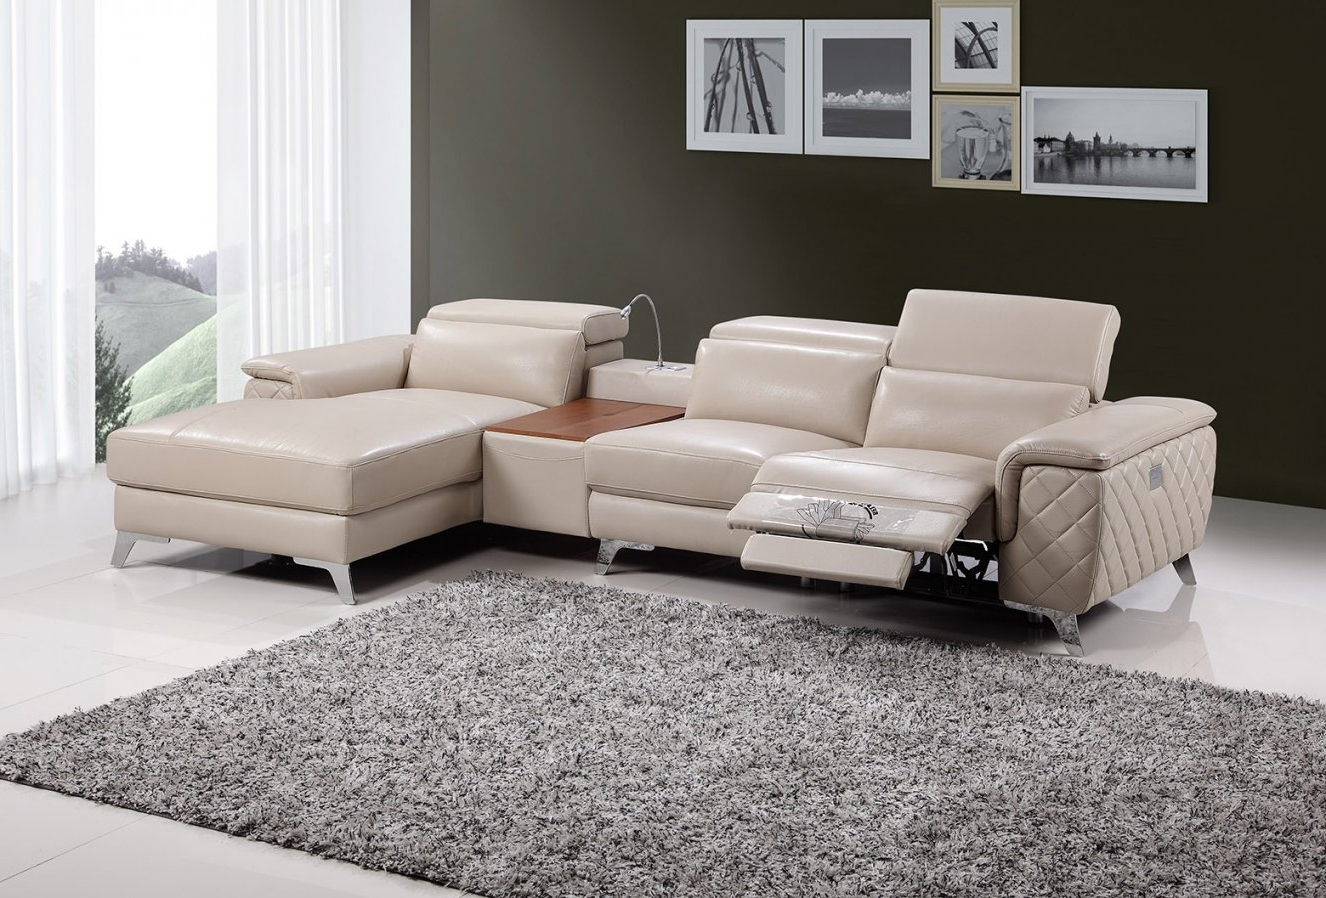 Well Liked Chaise Lounge Sofa With Recliner Intended For Chaise Lounge Recliners (View 2 of 15)